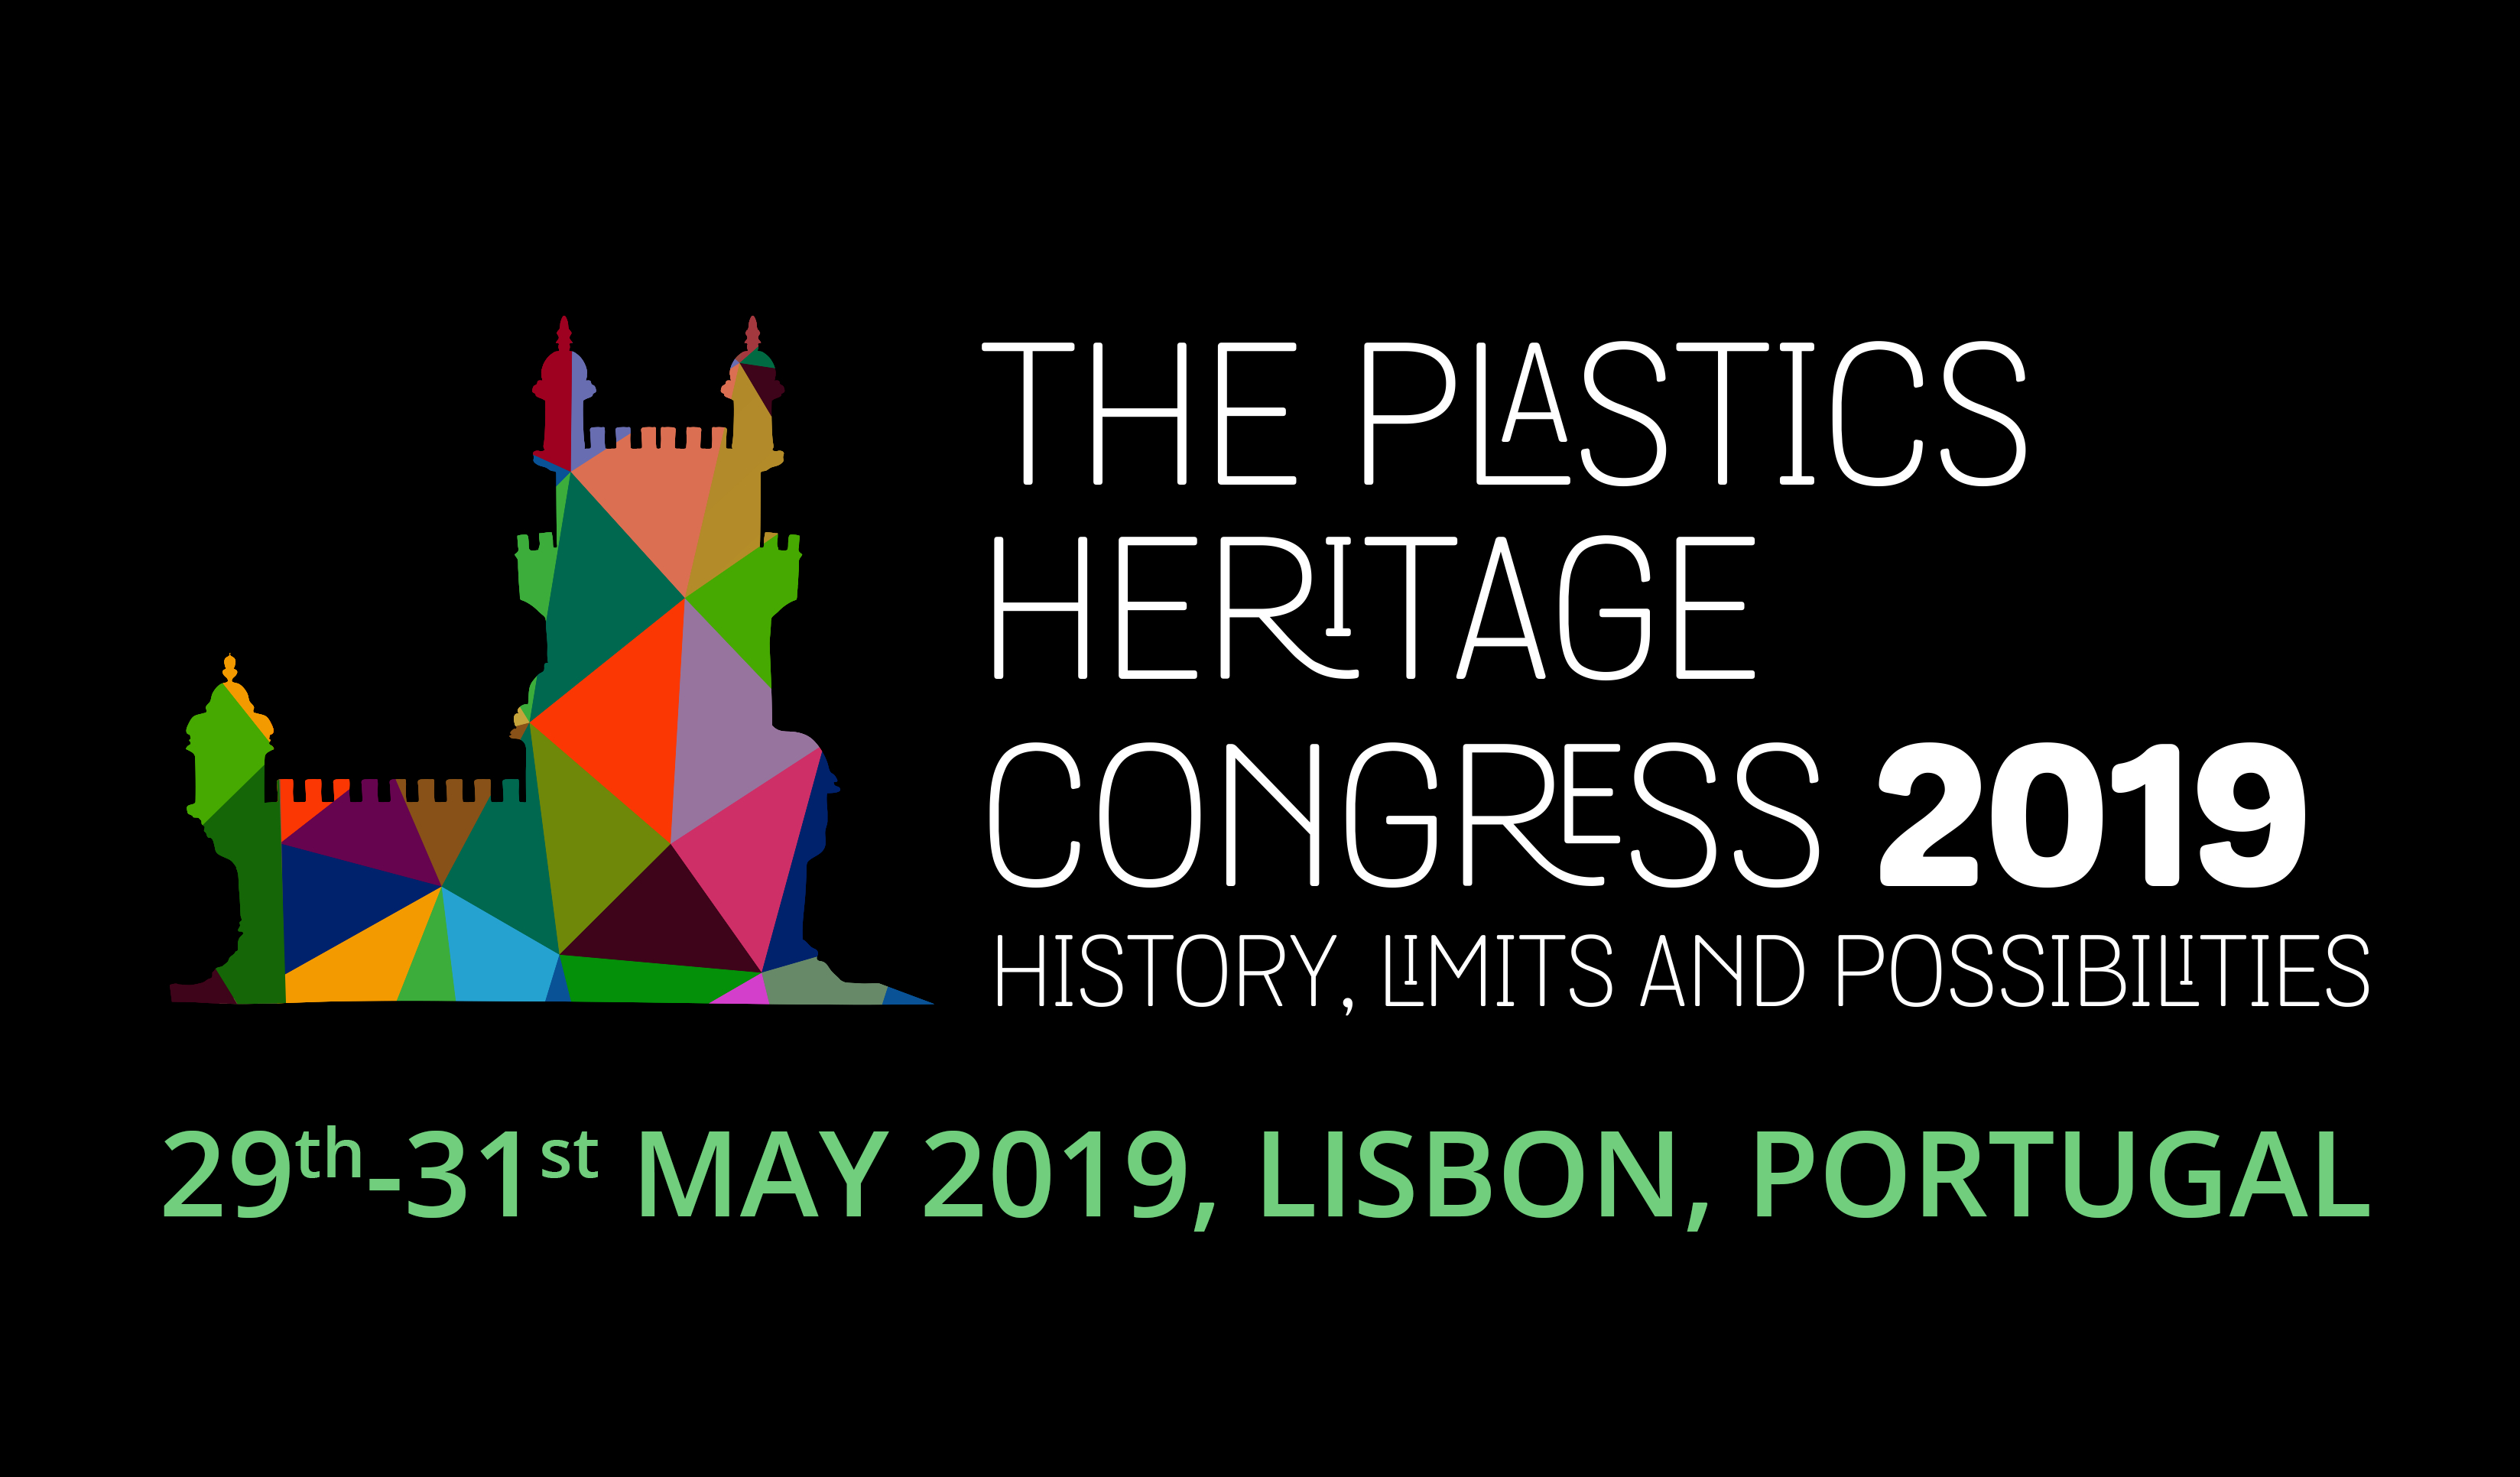 The Plastics Heritage Congress 2019